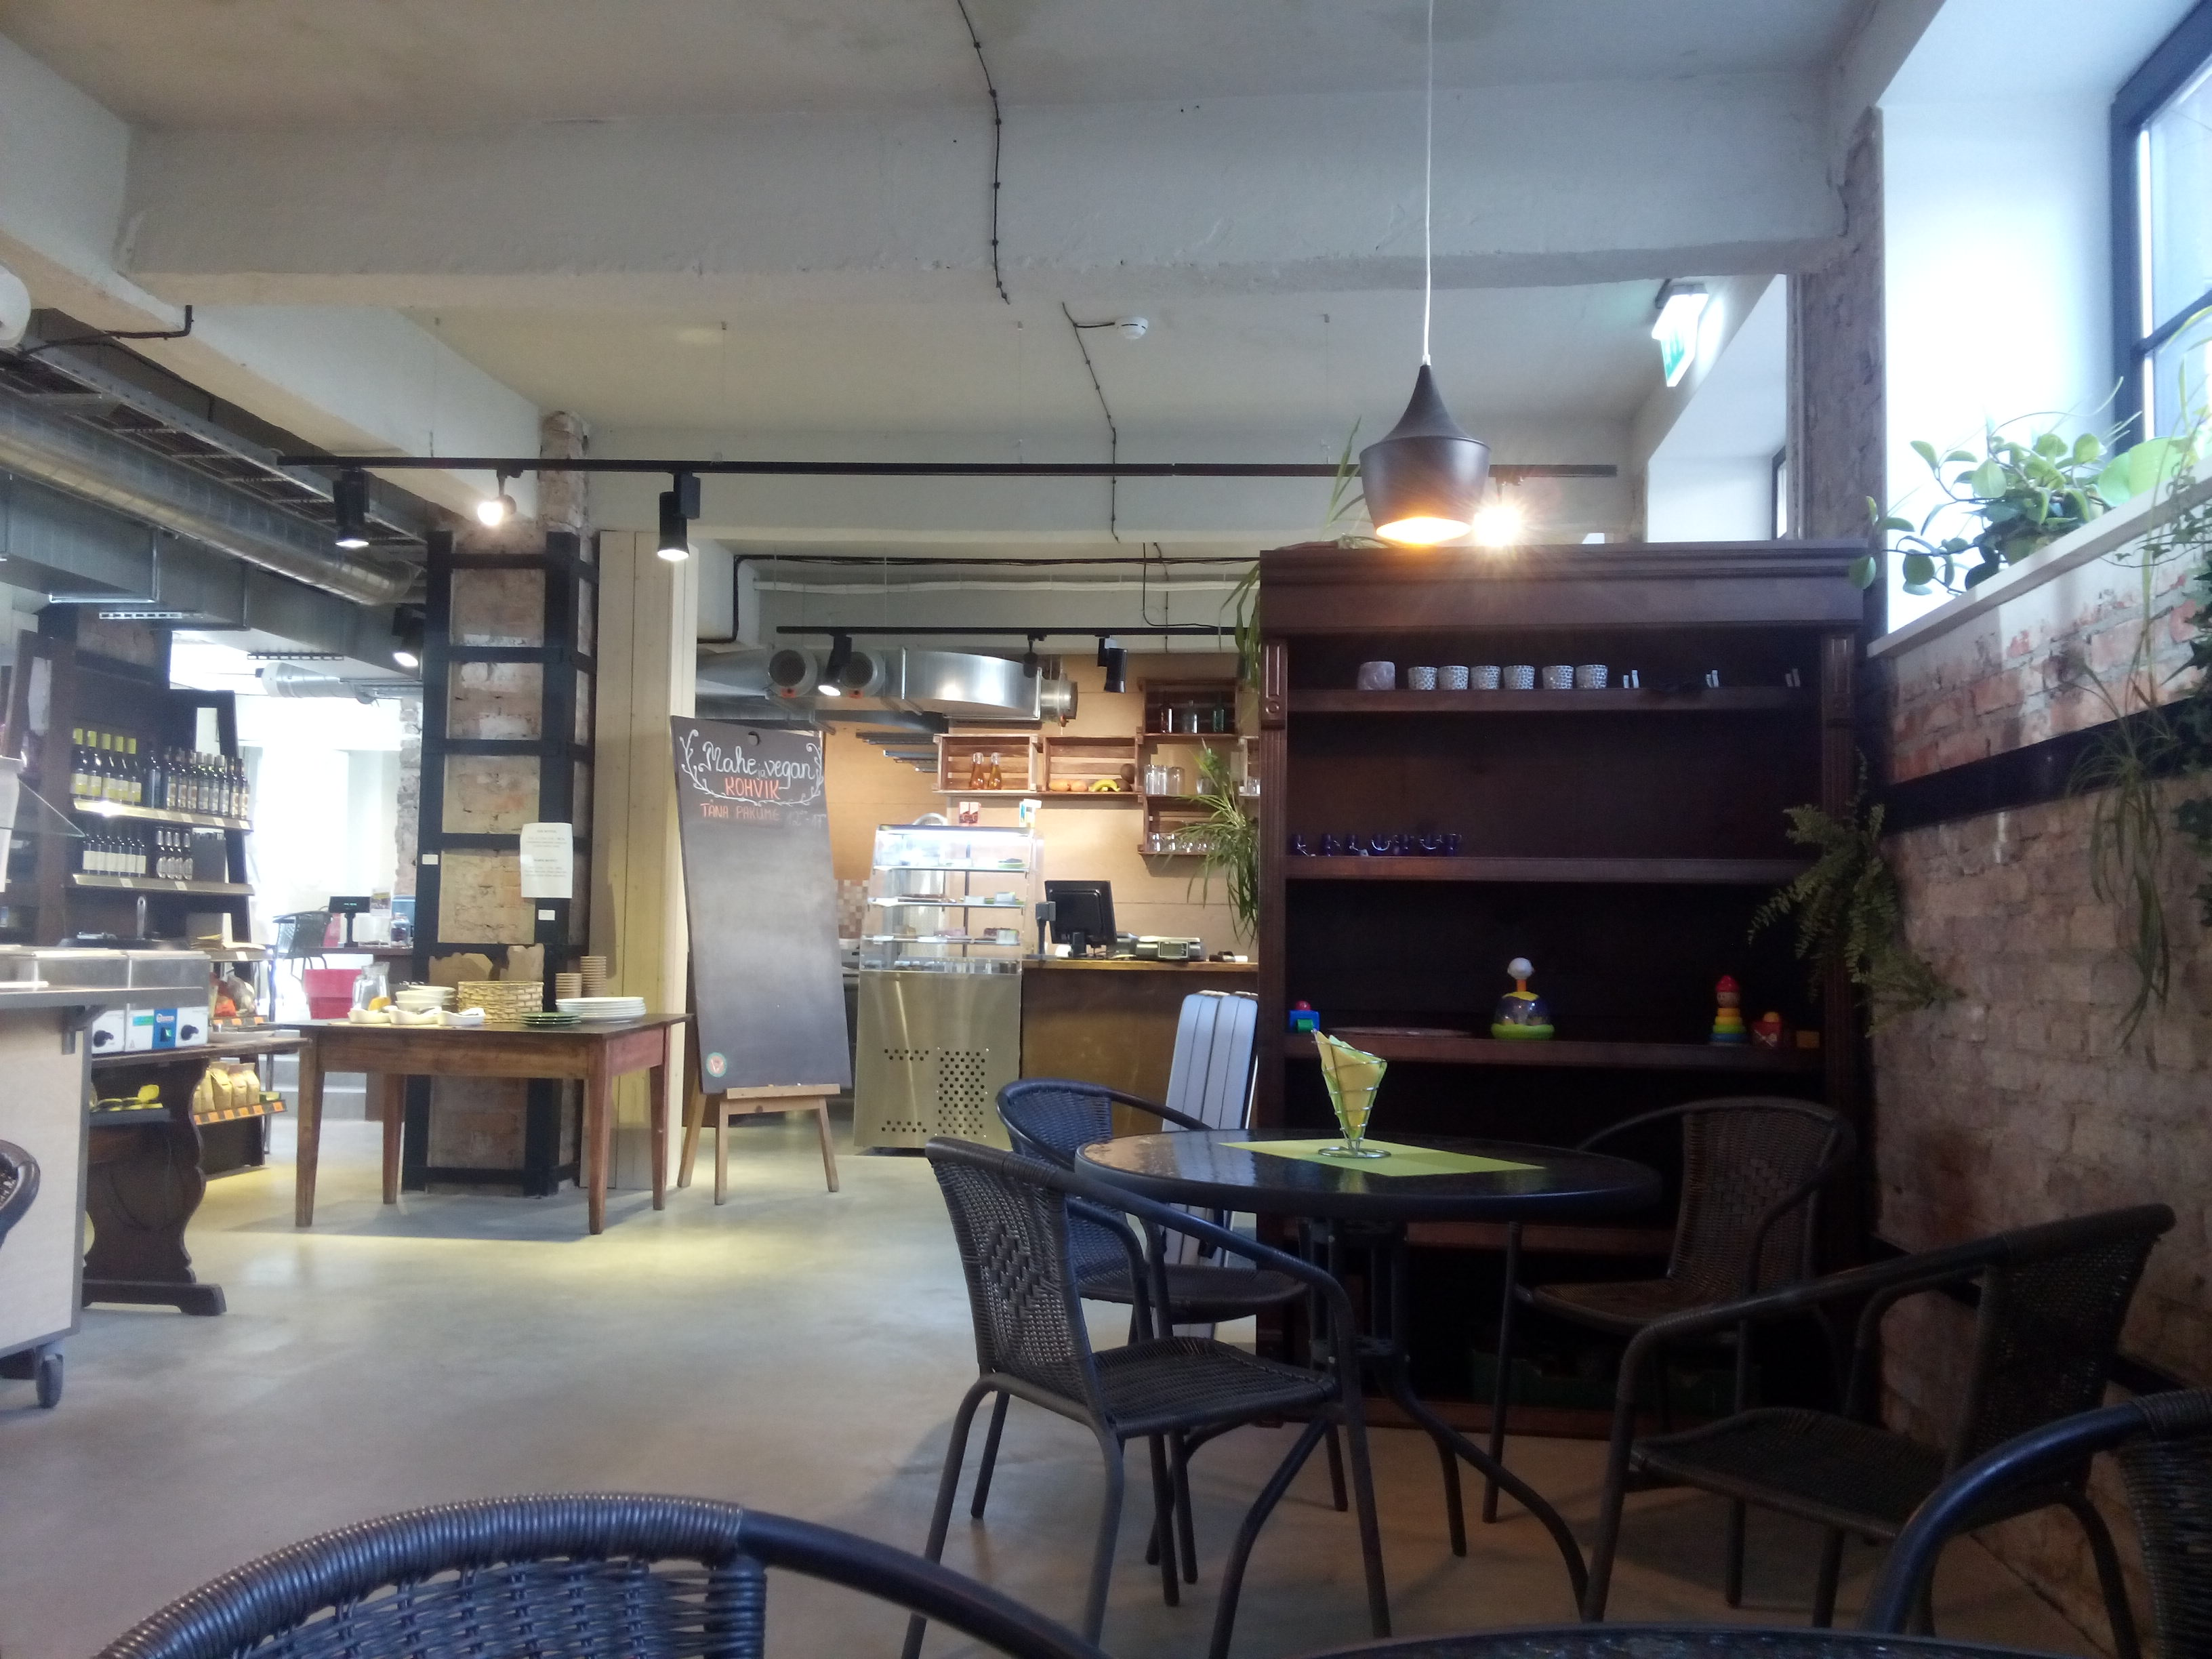 A cafe and shop interior with metal chairs and tables, wooden shelves and a counter in the distance